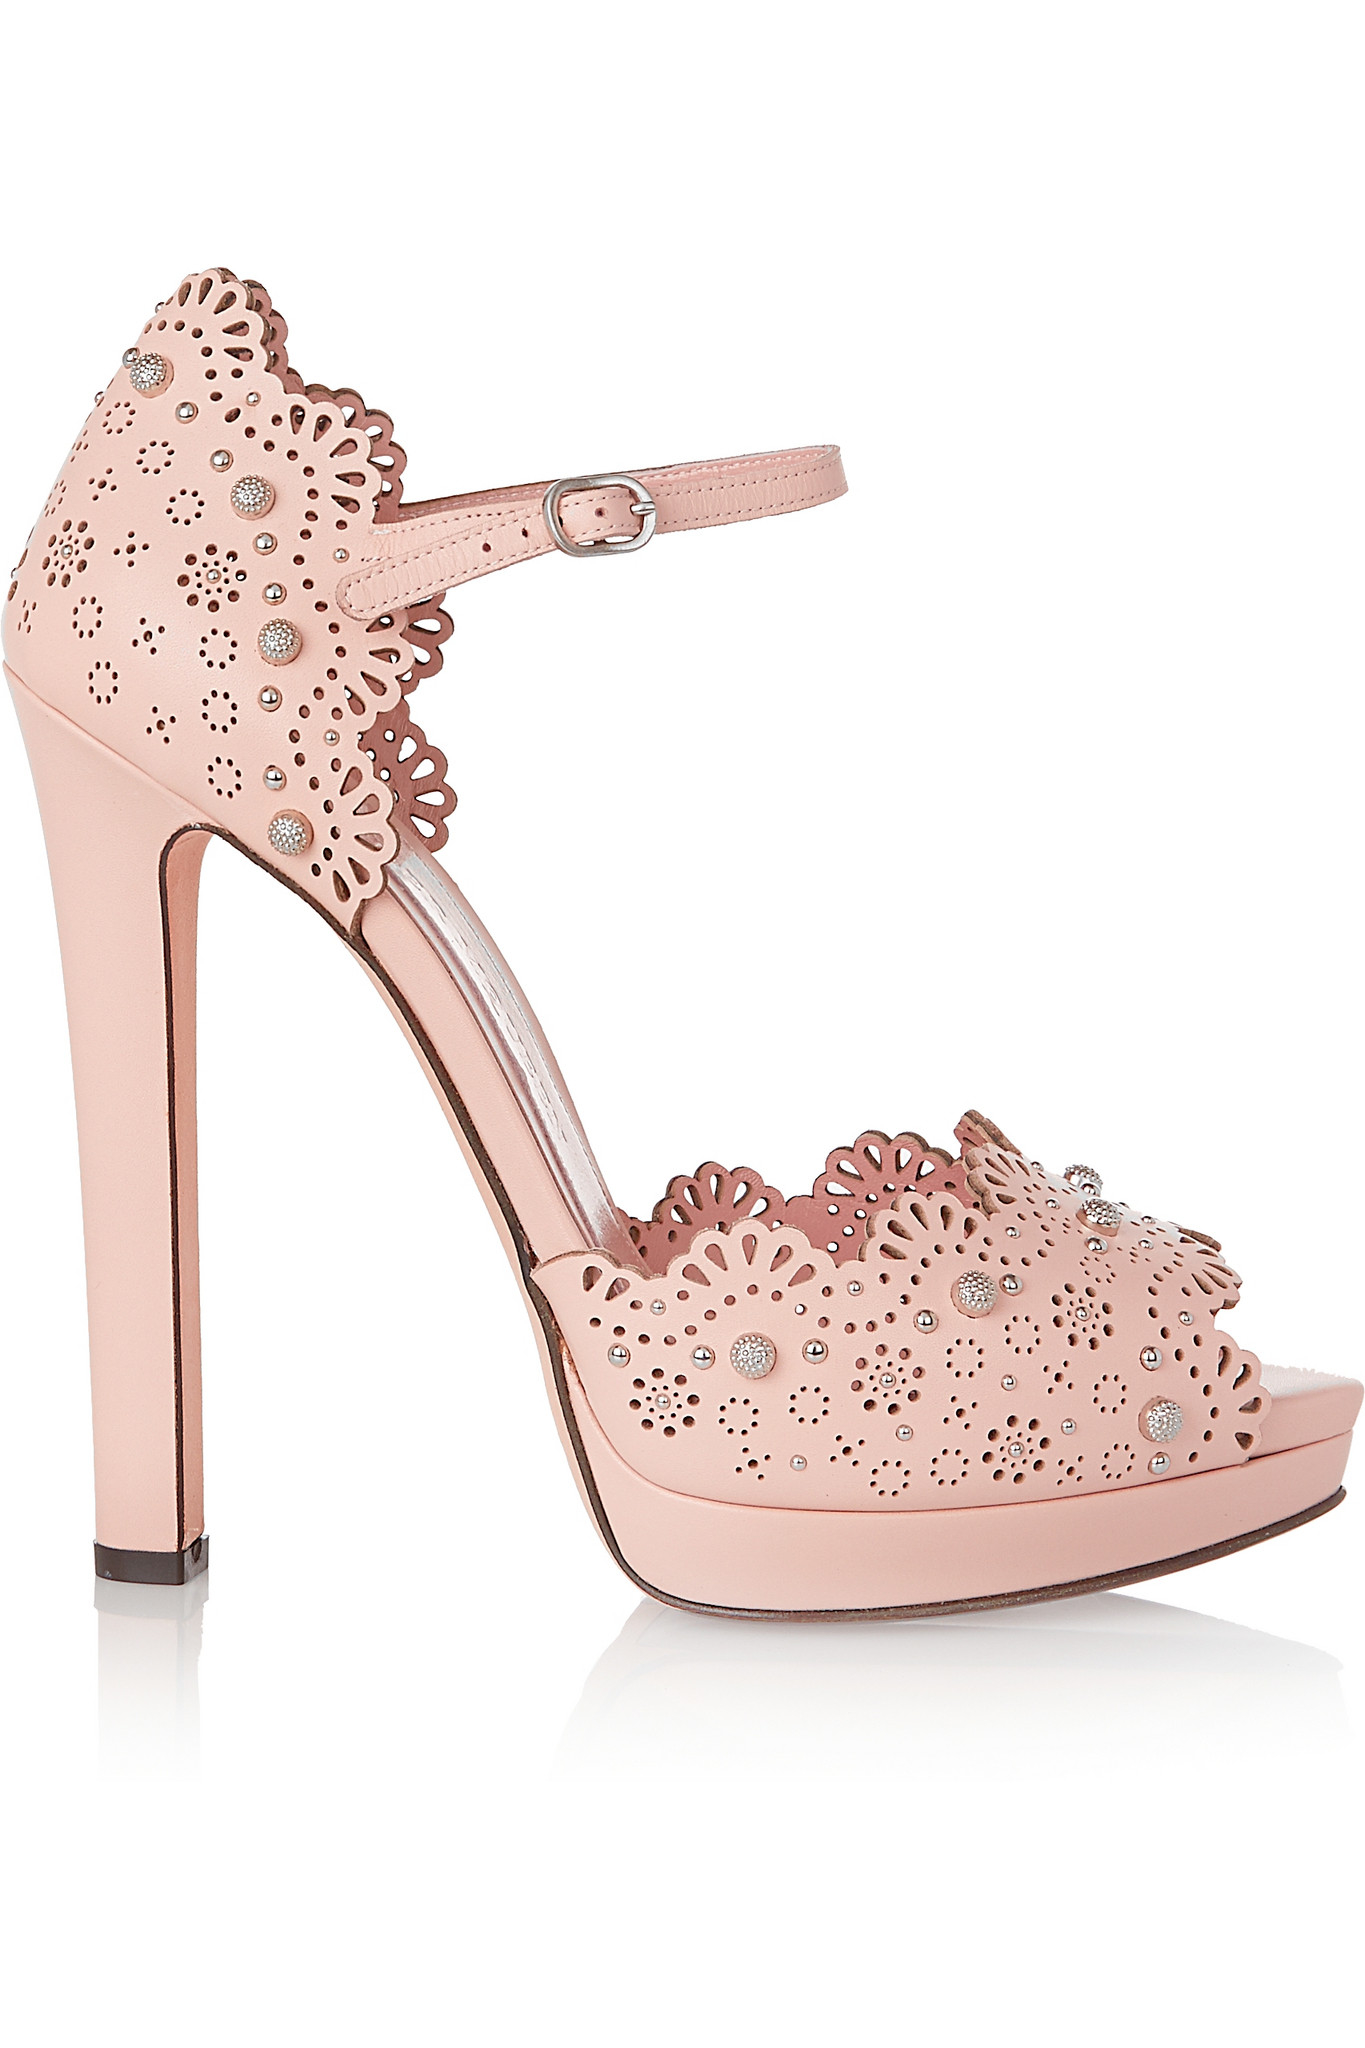 alexander-mcqueen-antique-rose-studded-laser-cut-leather-sandals-pink-product-4-559355053-normal.jpeg